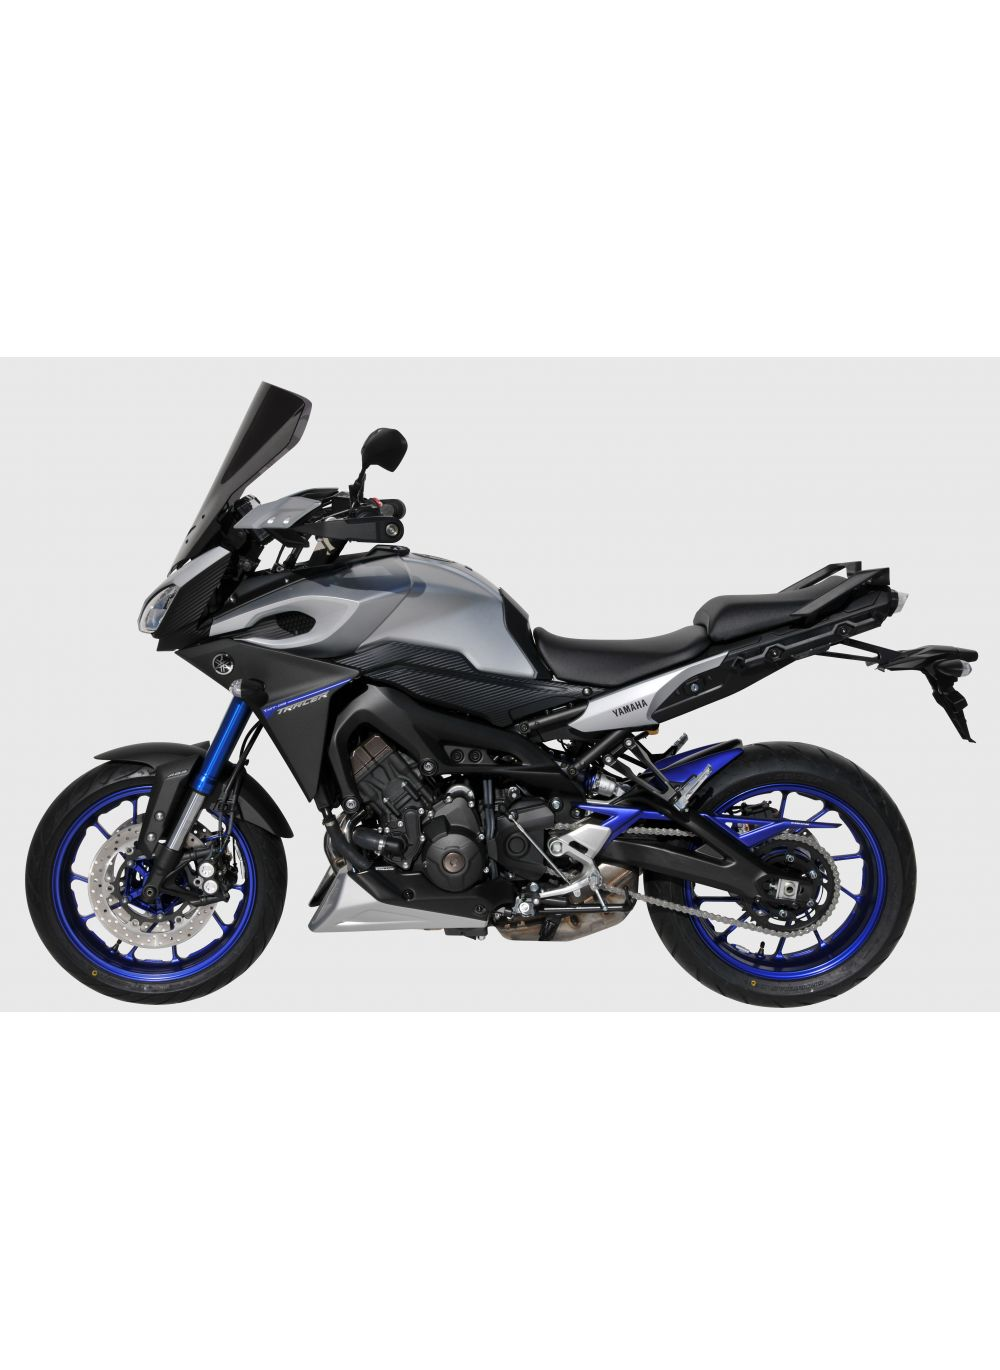 ermax hugger rear fender yamaha mt 09 tracer 900 2015 2017 g g shop. Black Bedroom Furniture Sets. Home Design Ideas